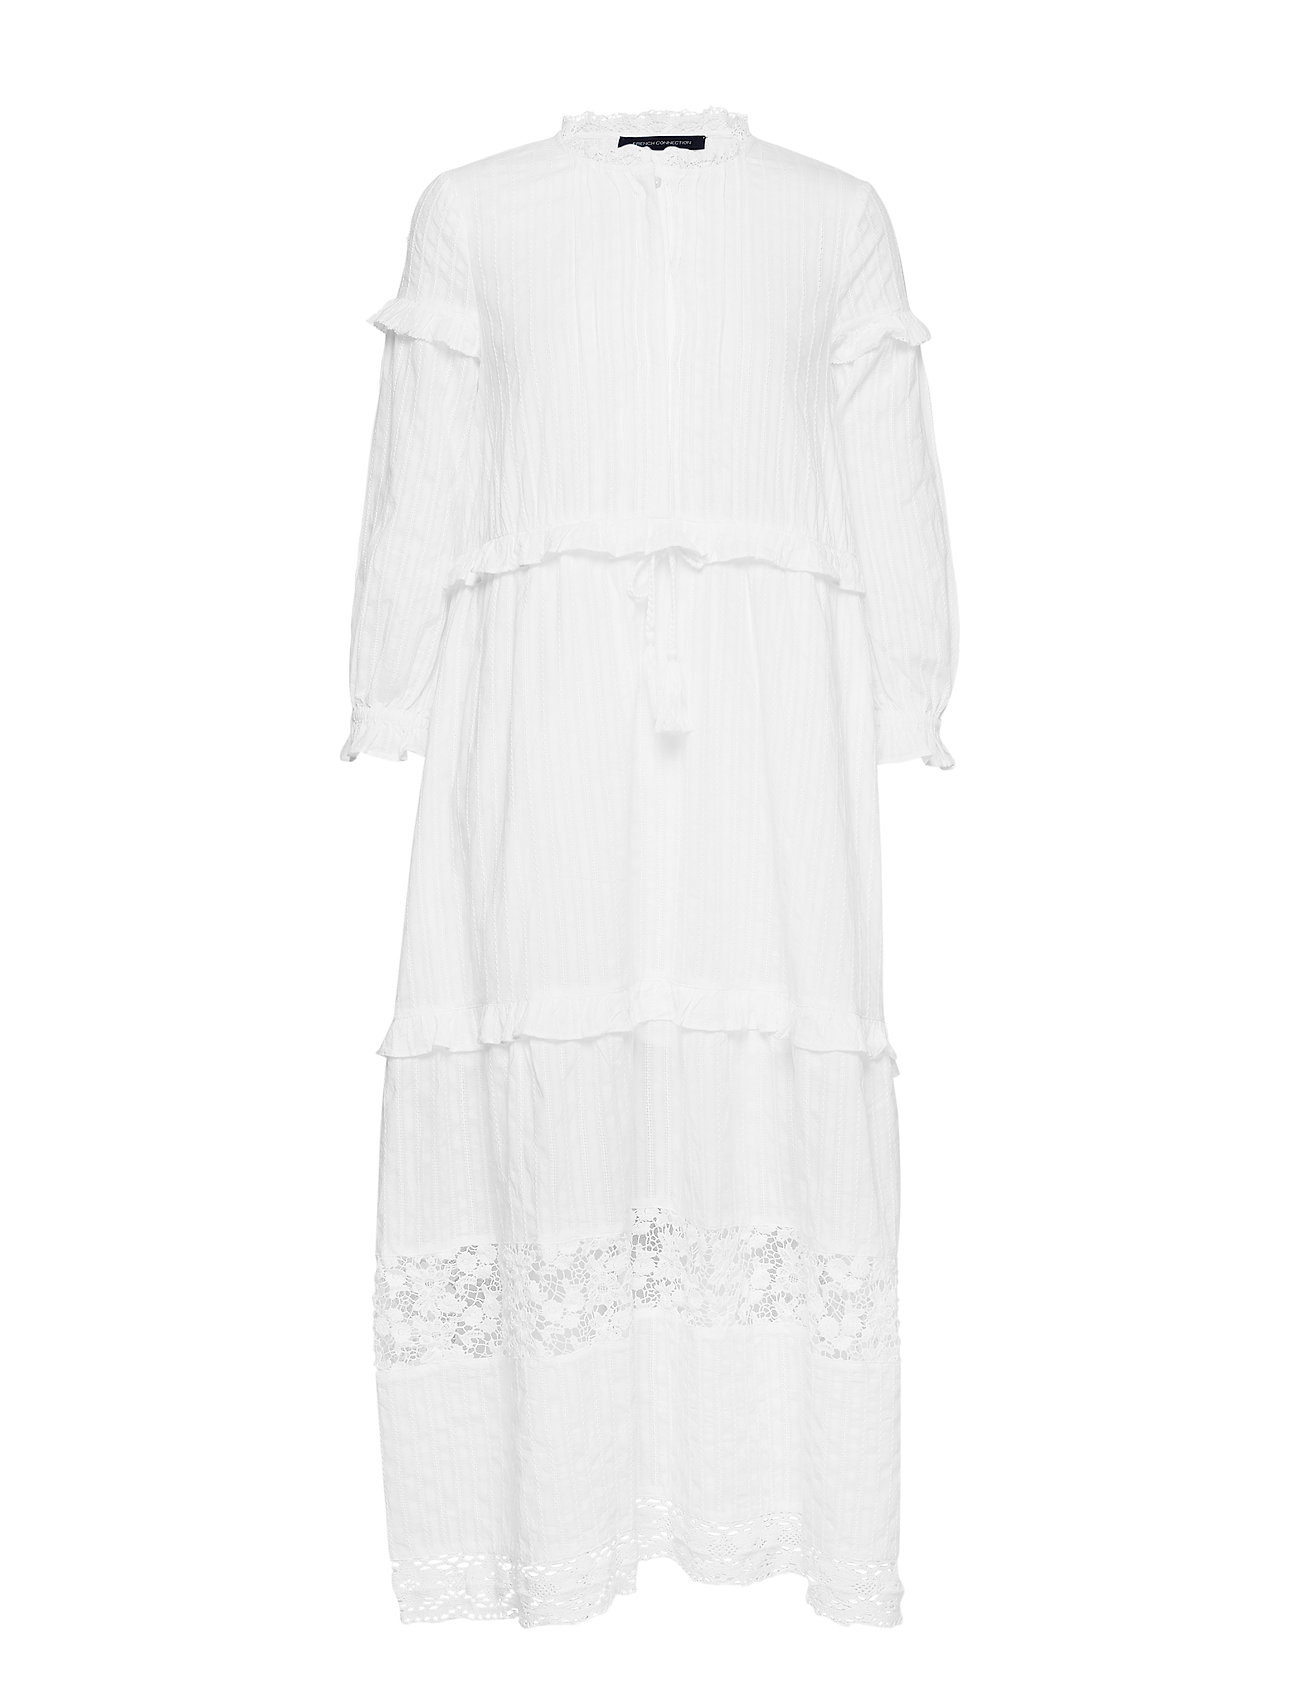 French Connection COTTON BROIDERY DRESS - SUMMER WHITE